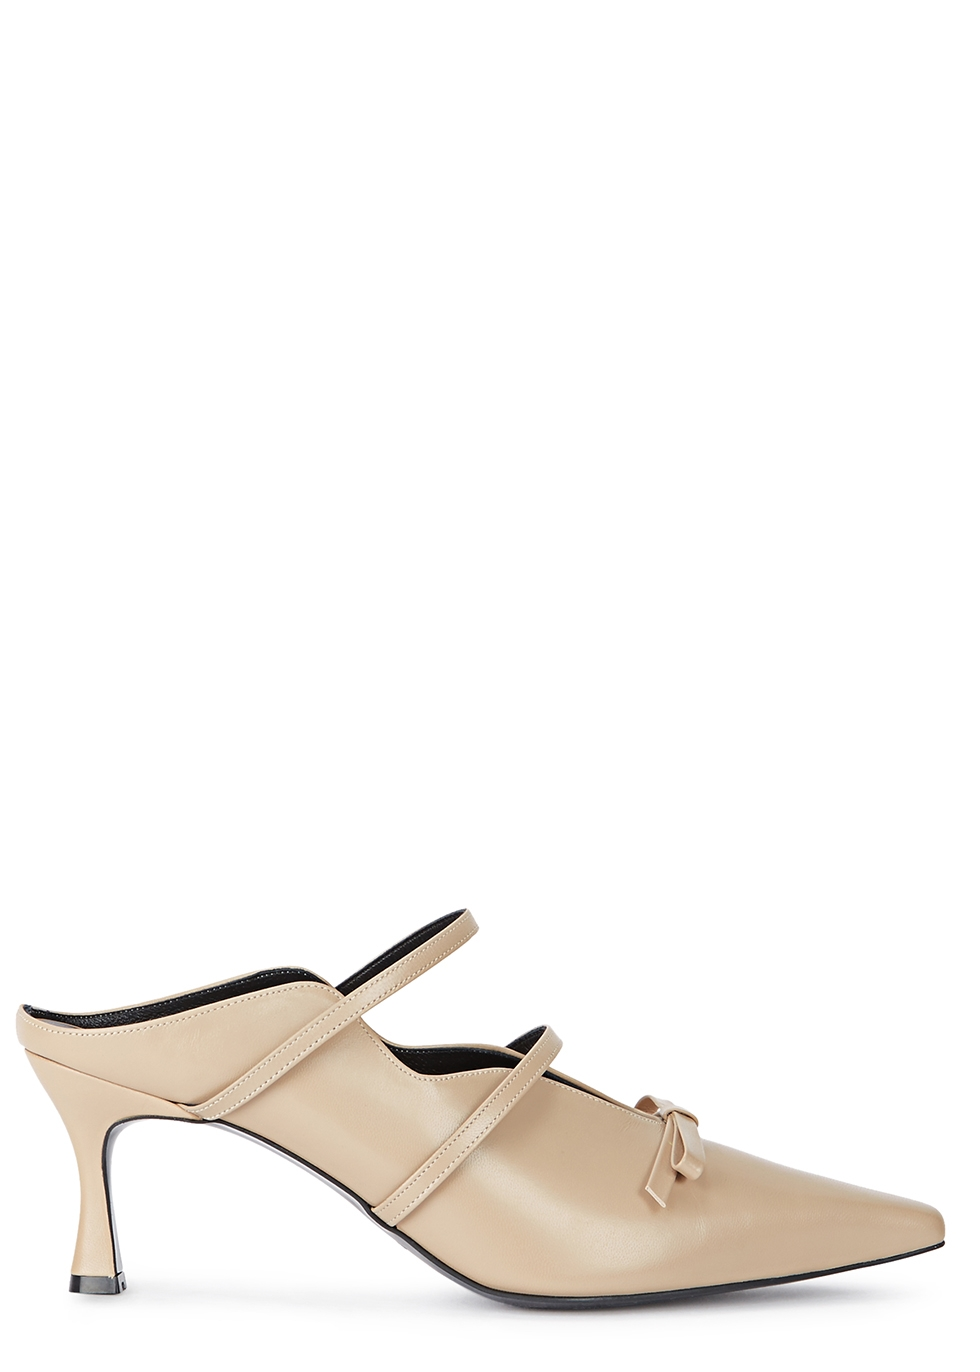 Judith Stone Leather Mules in Beige